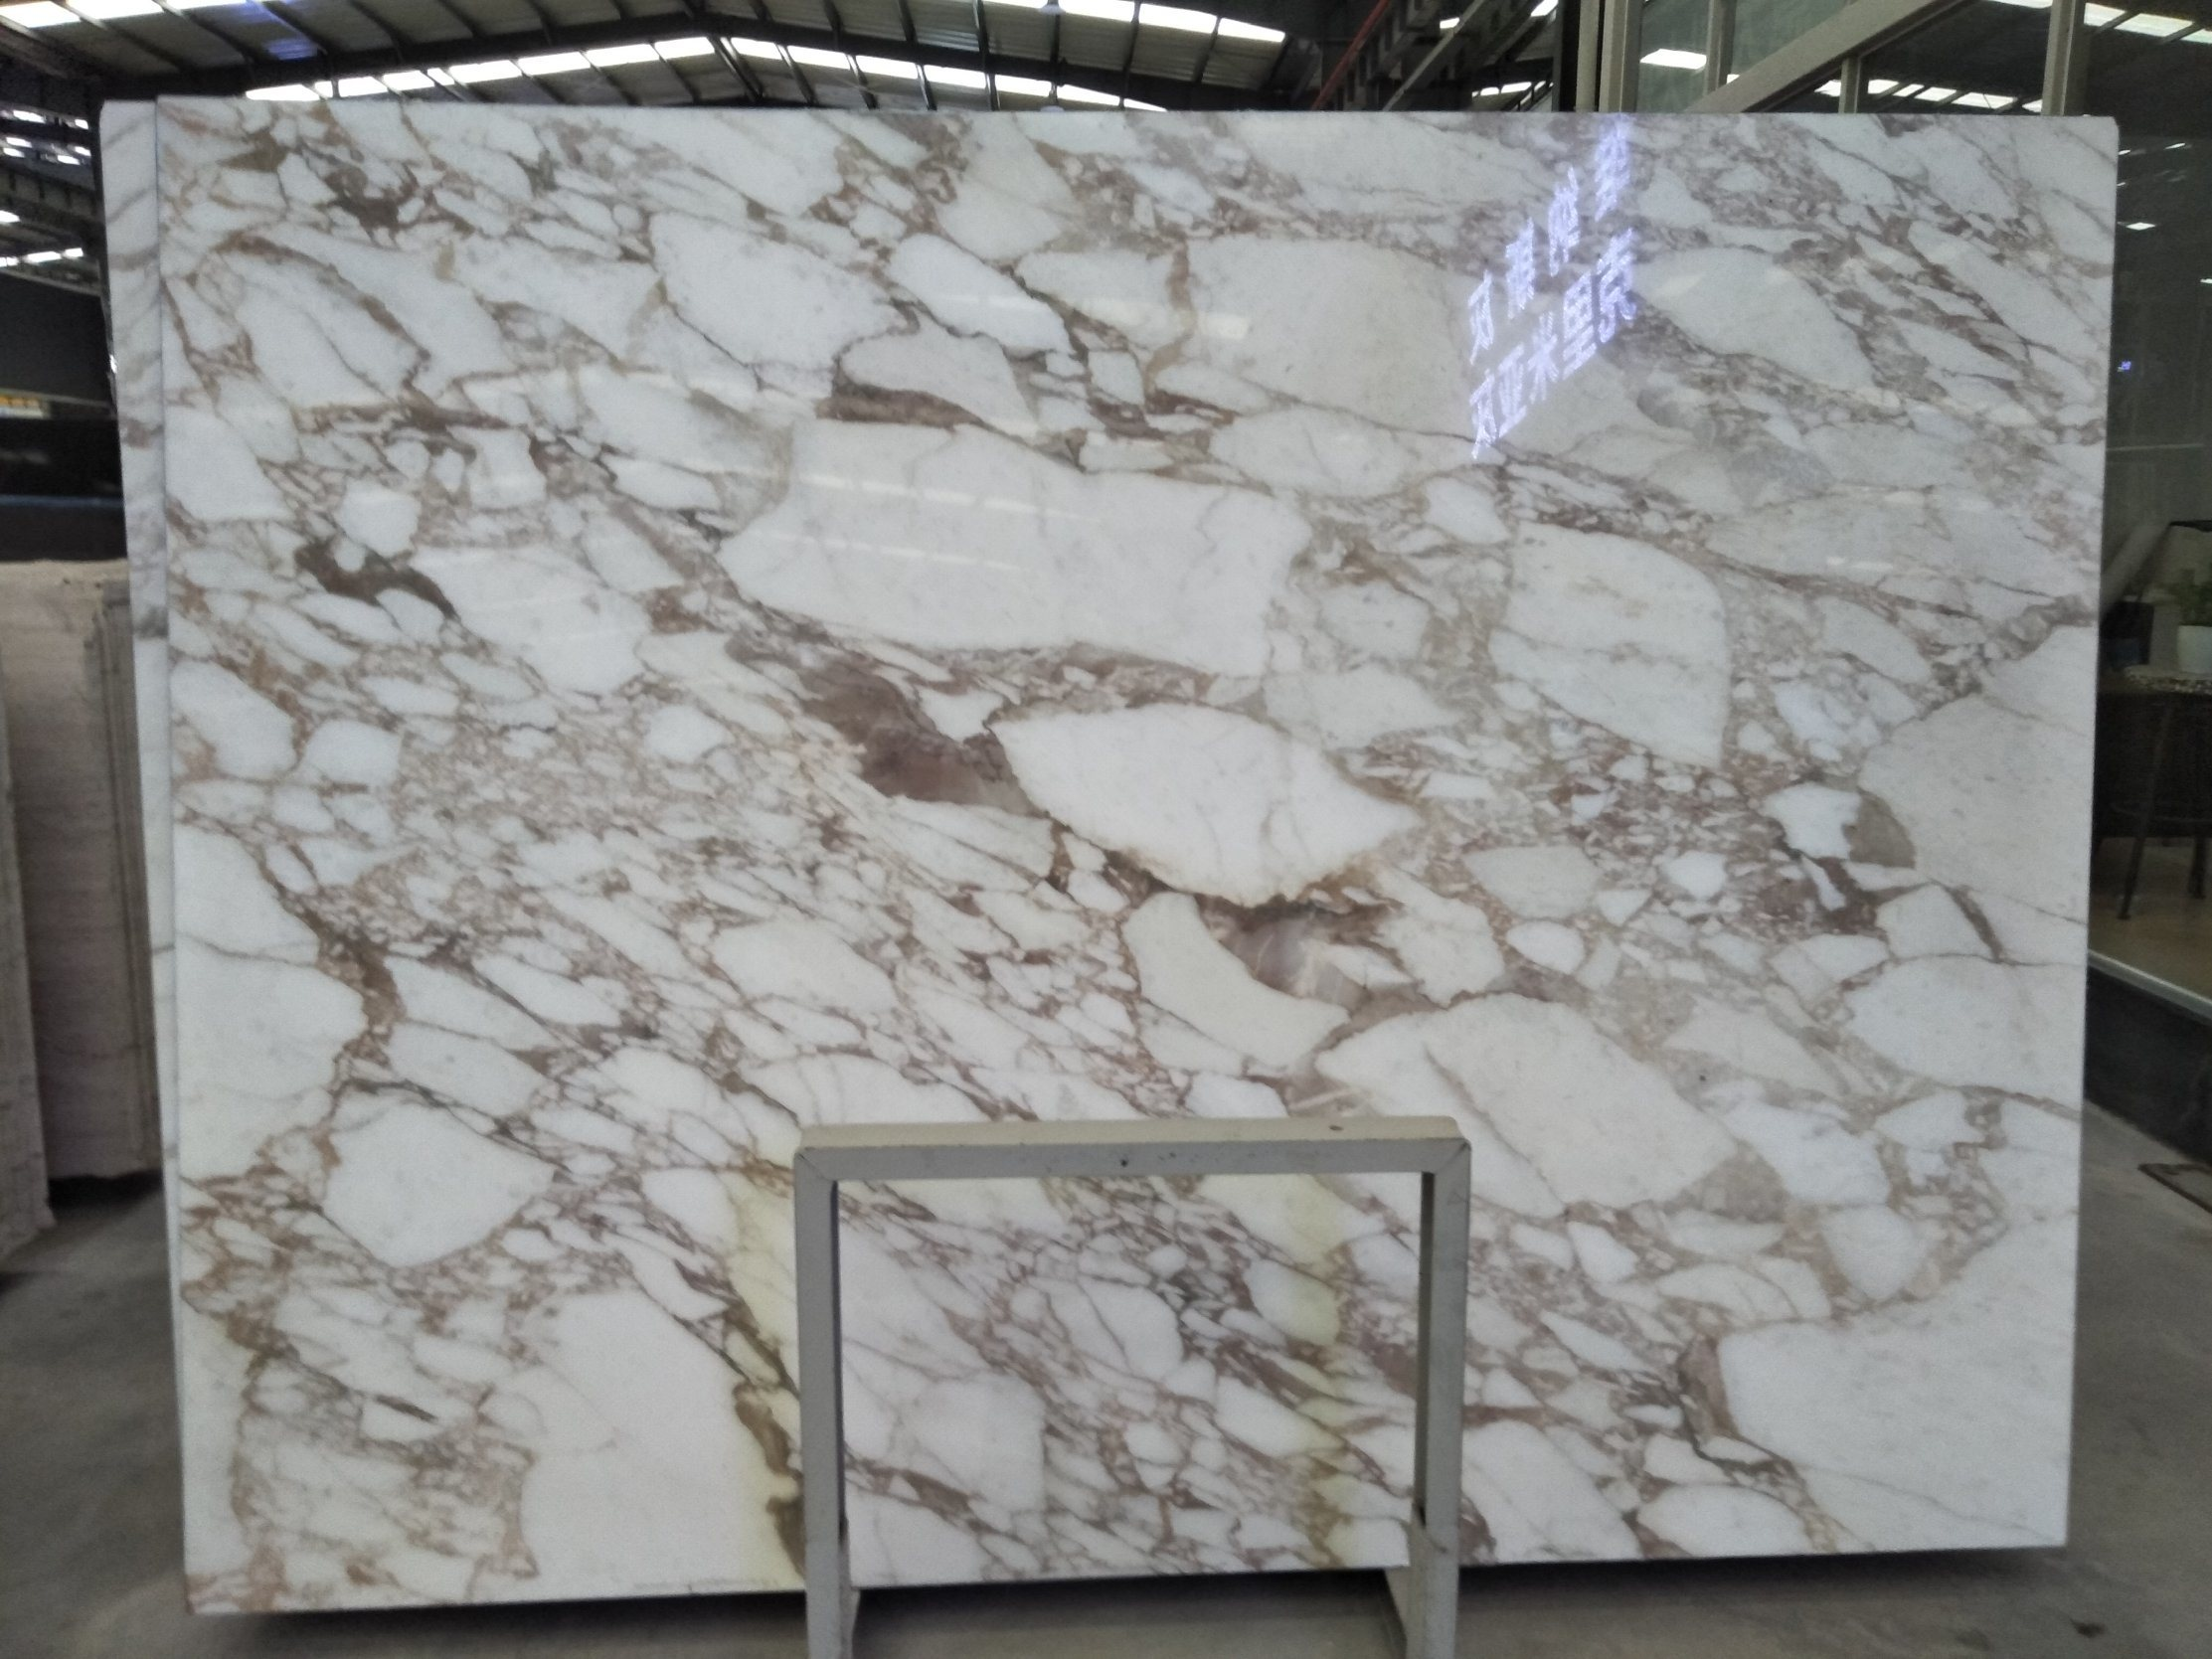 China Natural Stone Grey Beige White Polished Honed Calacatta Gold Marble For Floor Wall Slabs Tiles Countertops Stairs Sills Column Mosaic Interiors Decoration China Vanity Tops Cut To Size